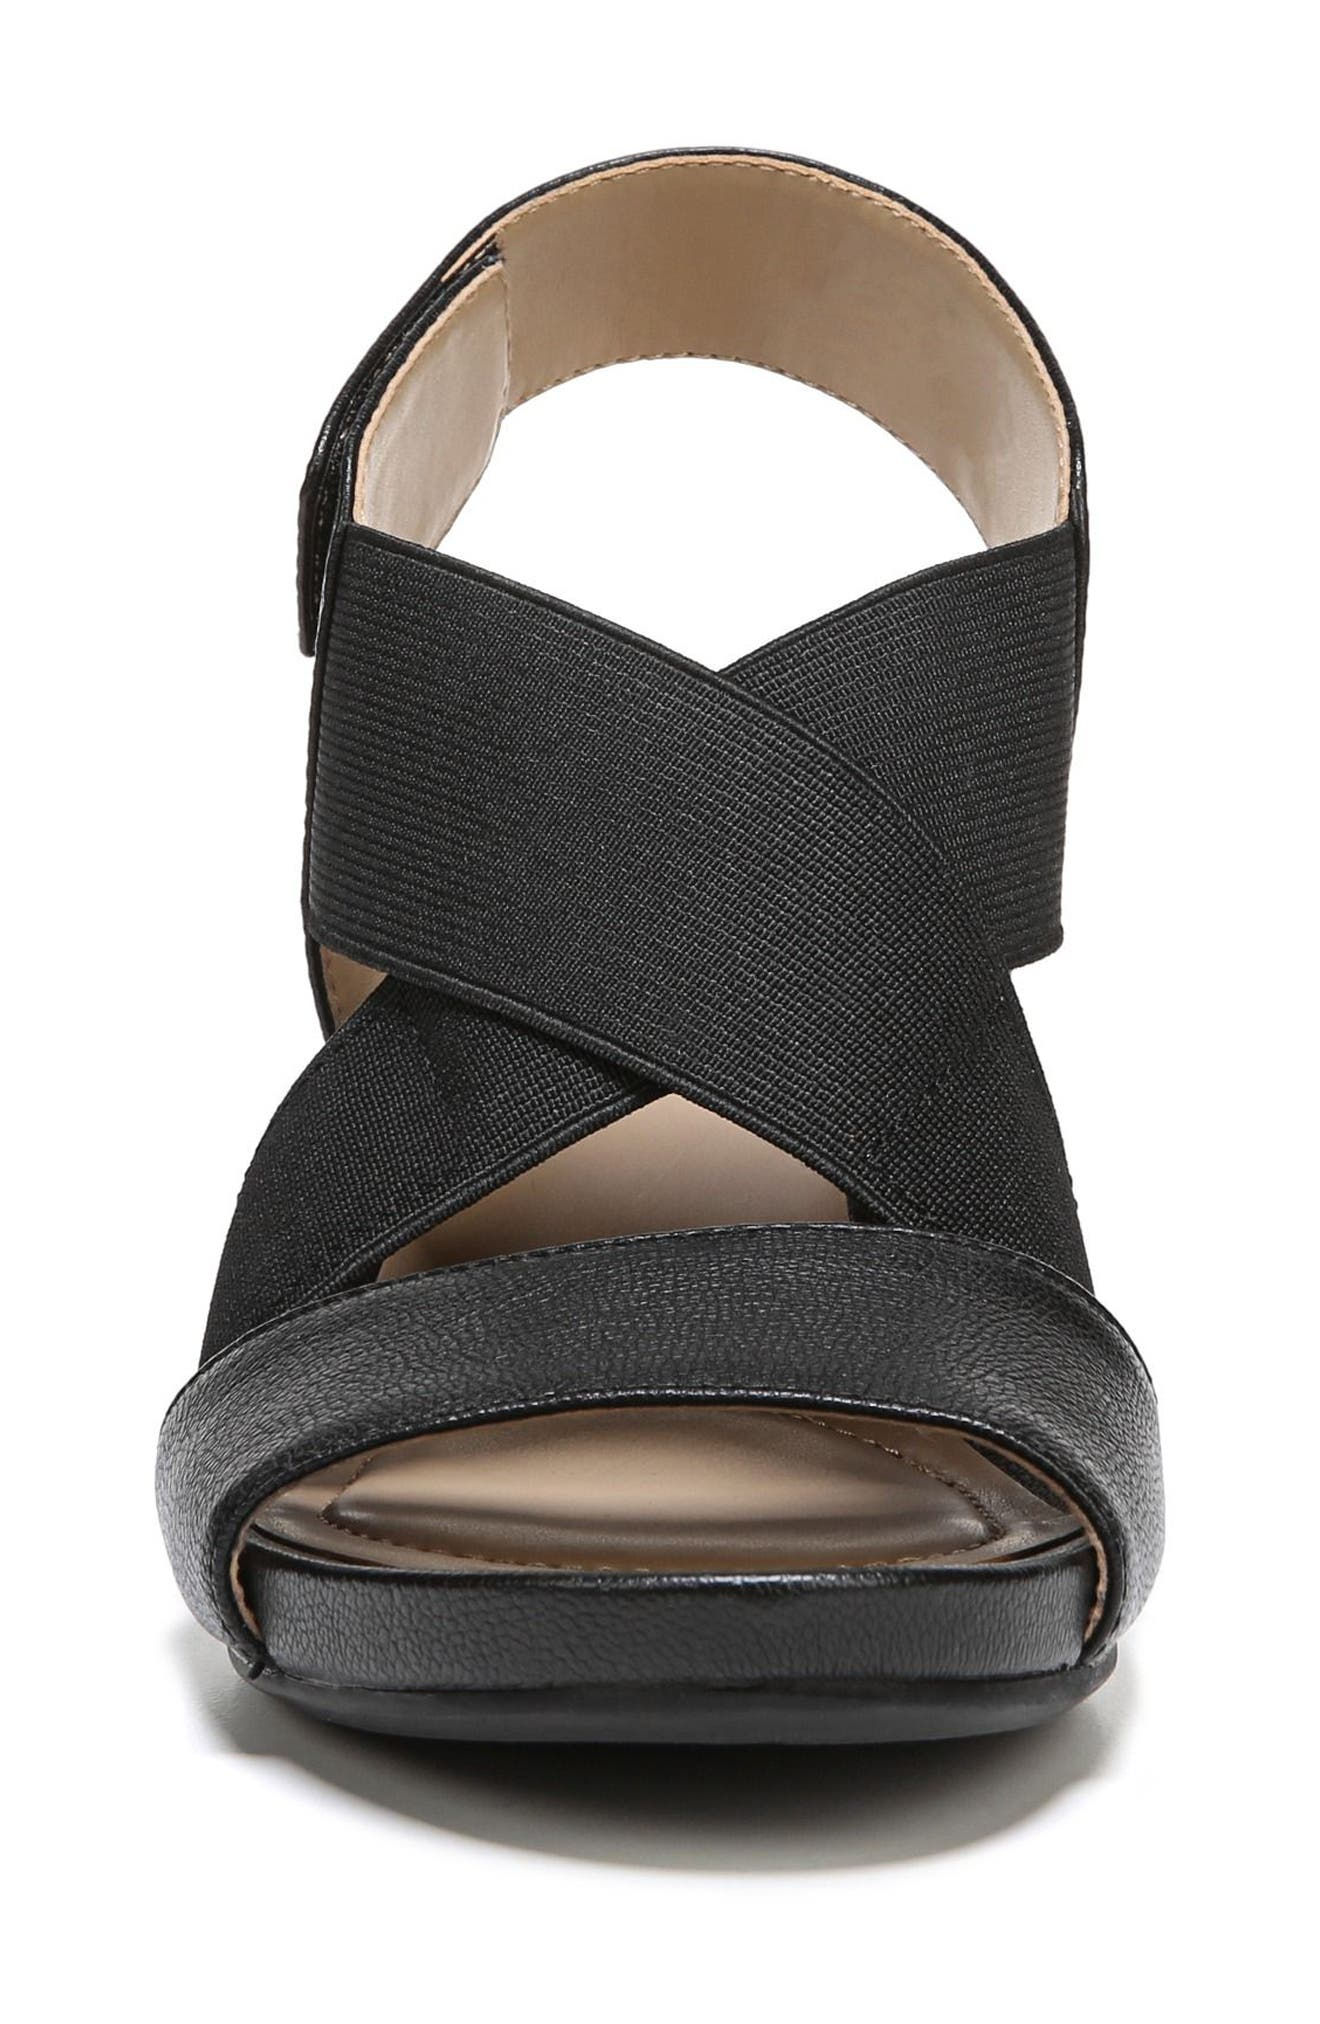 Cleo Wedge Sandal,                             Alternate thumbnail 4, color,                             BLACK LEATHER